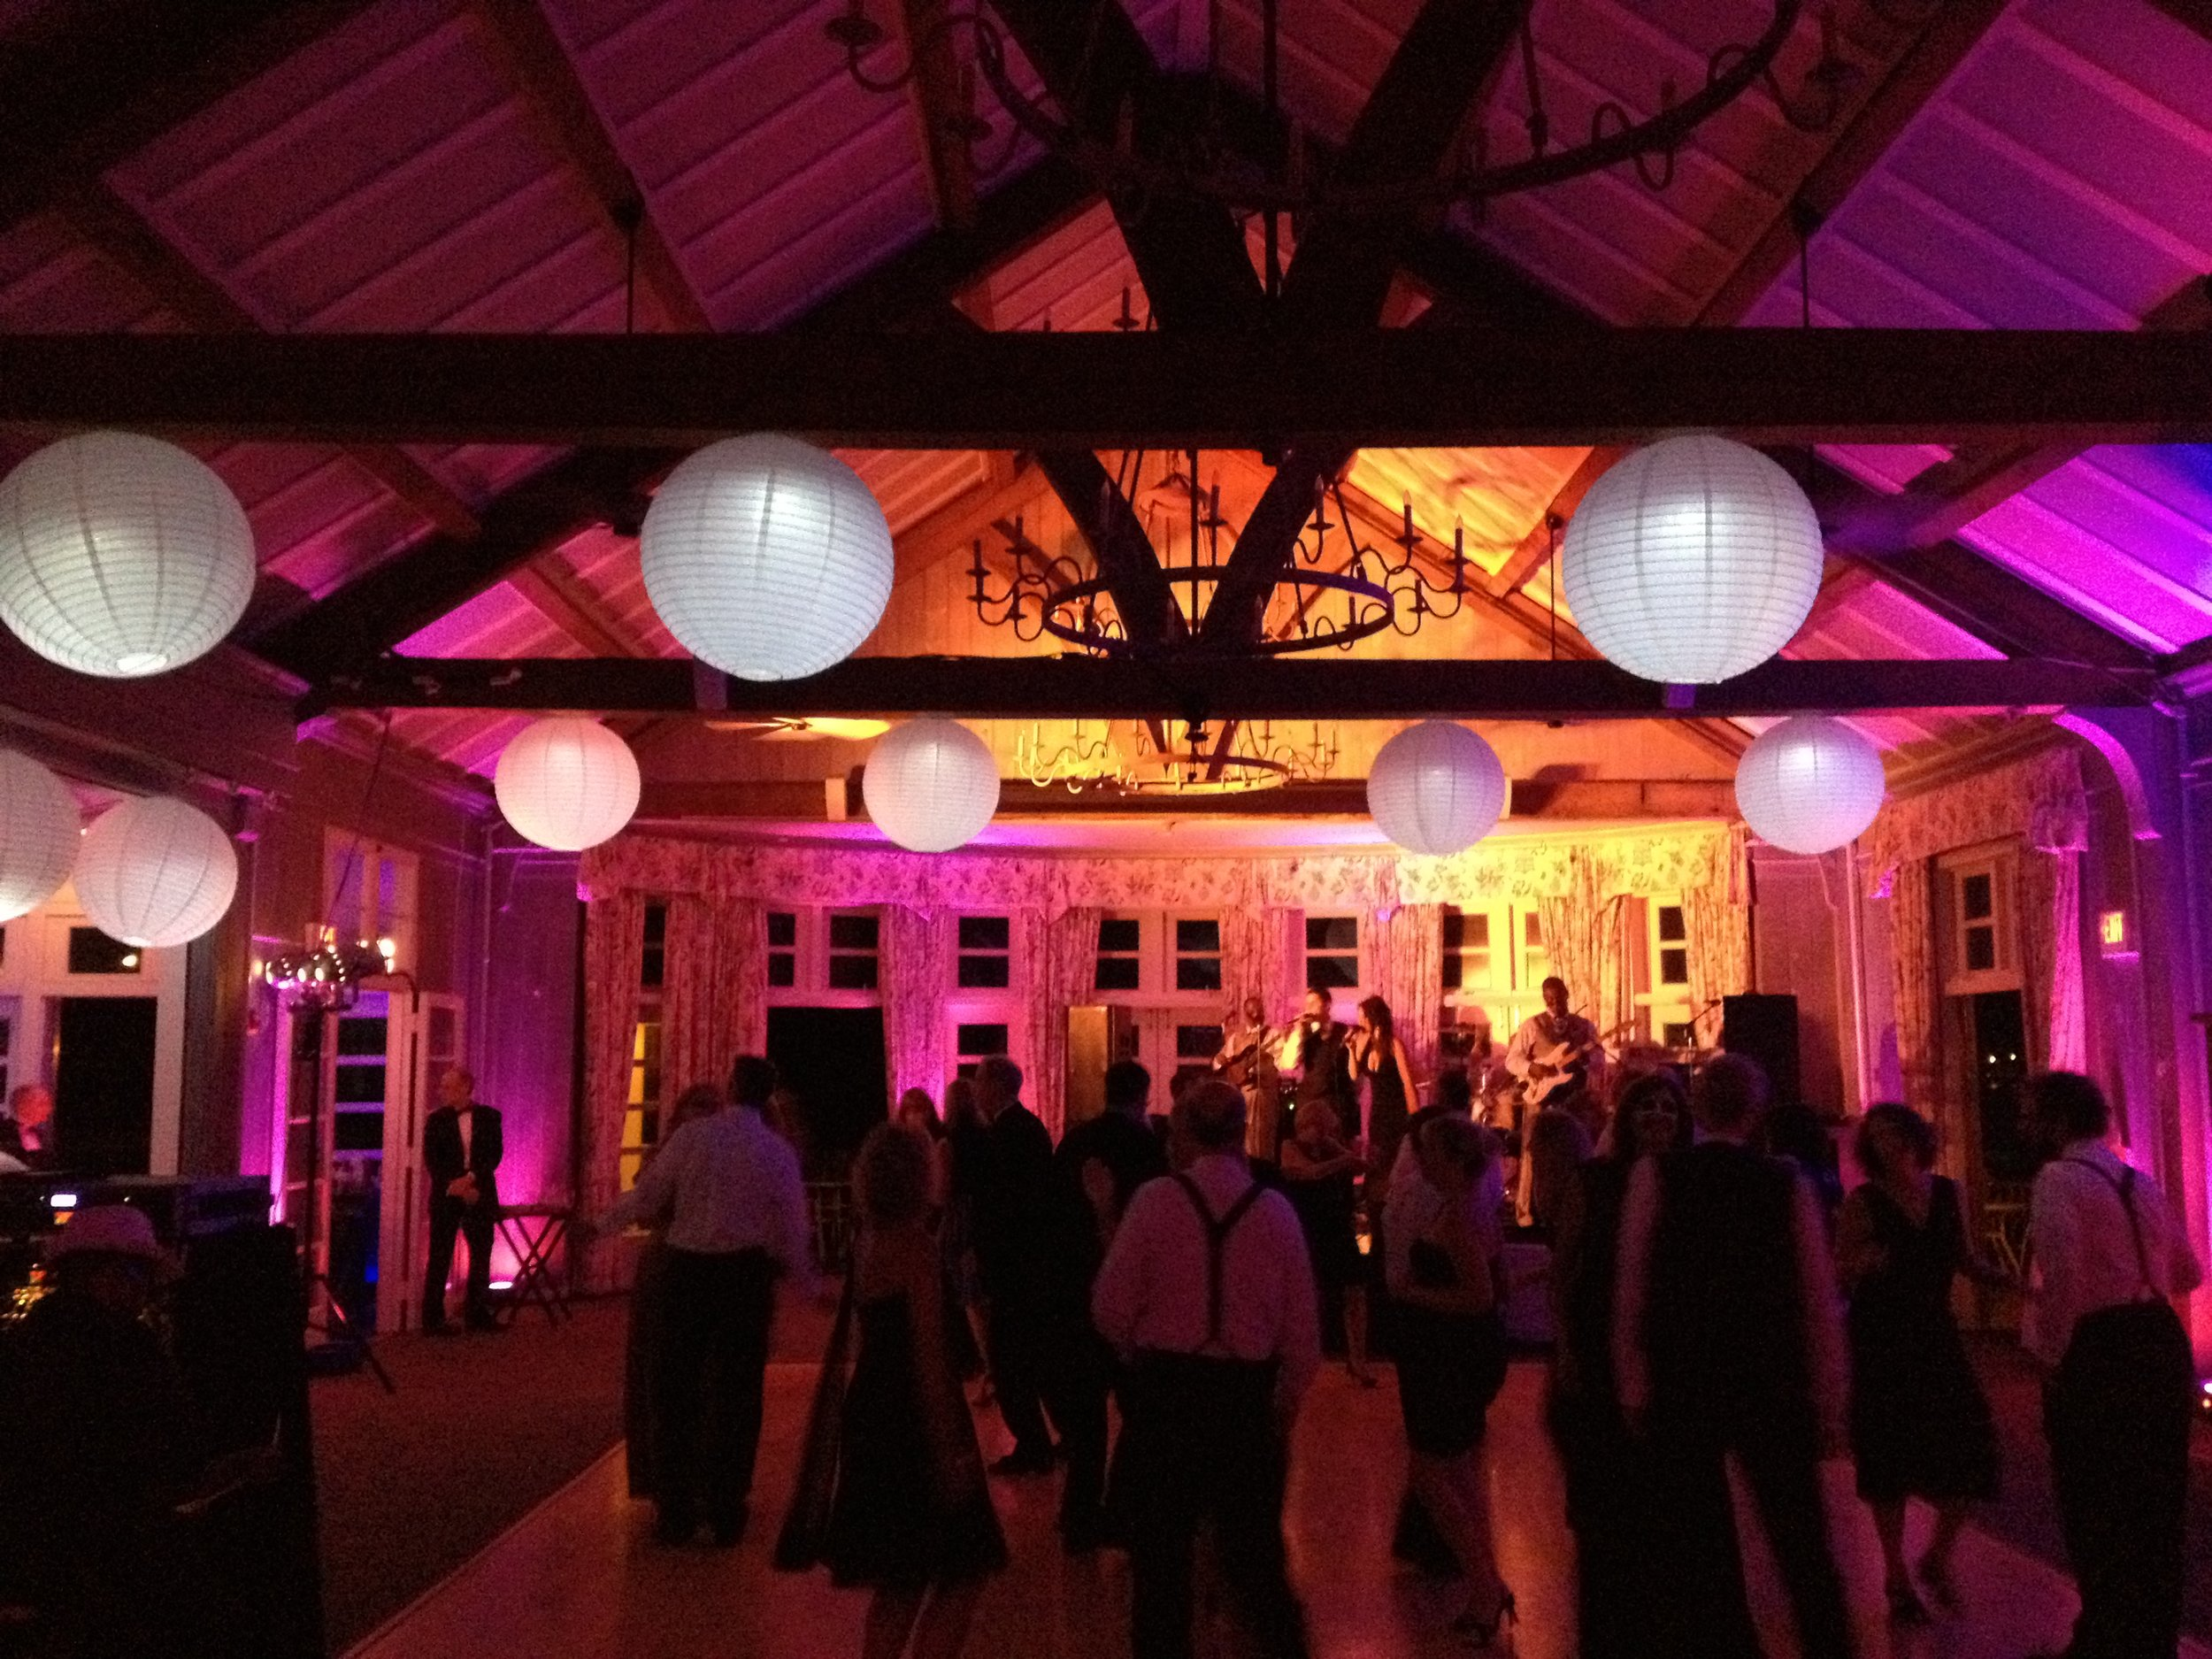 Chinese lanterns and uplighting at The Dunes Club, Narragansett